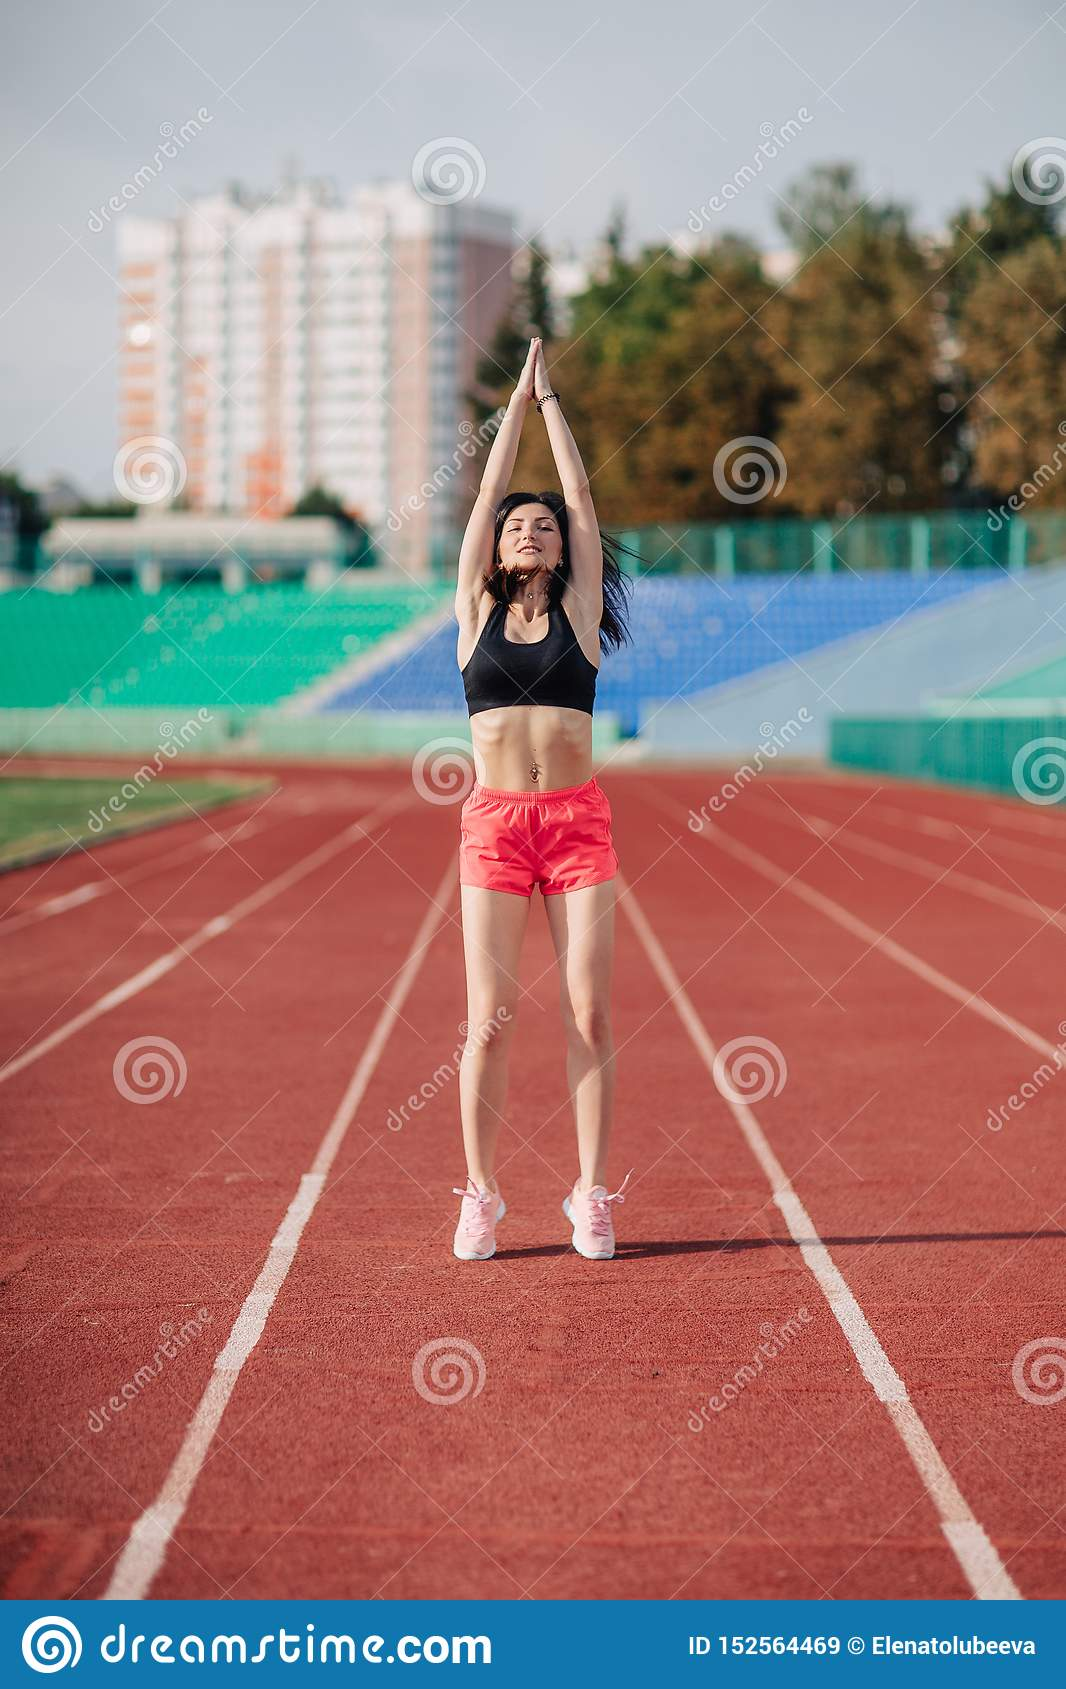 Attractive sporty brunette woman in pink shorts and top doing workout with jump rope in sun rays at the stadium